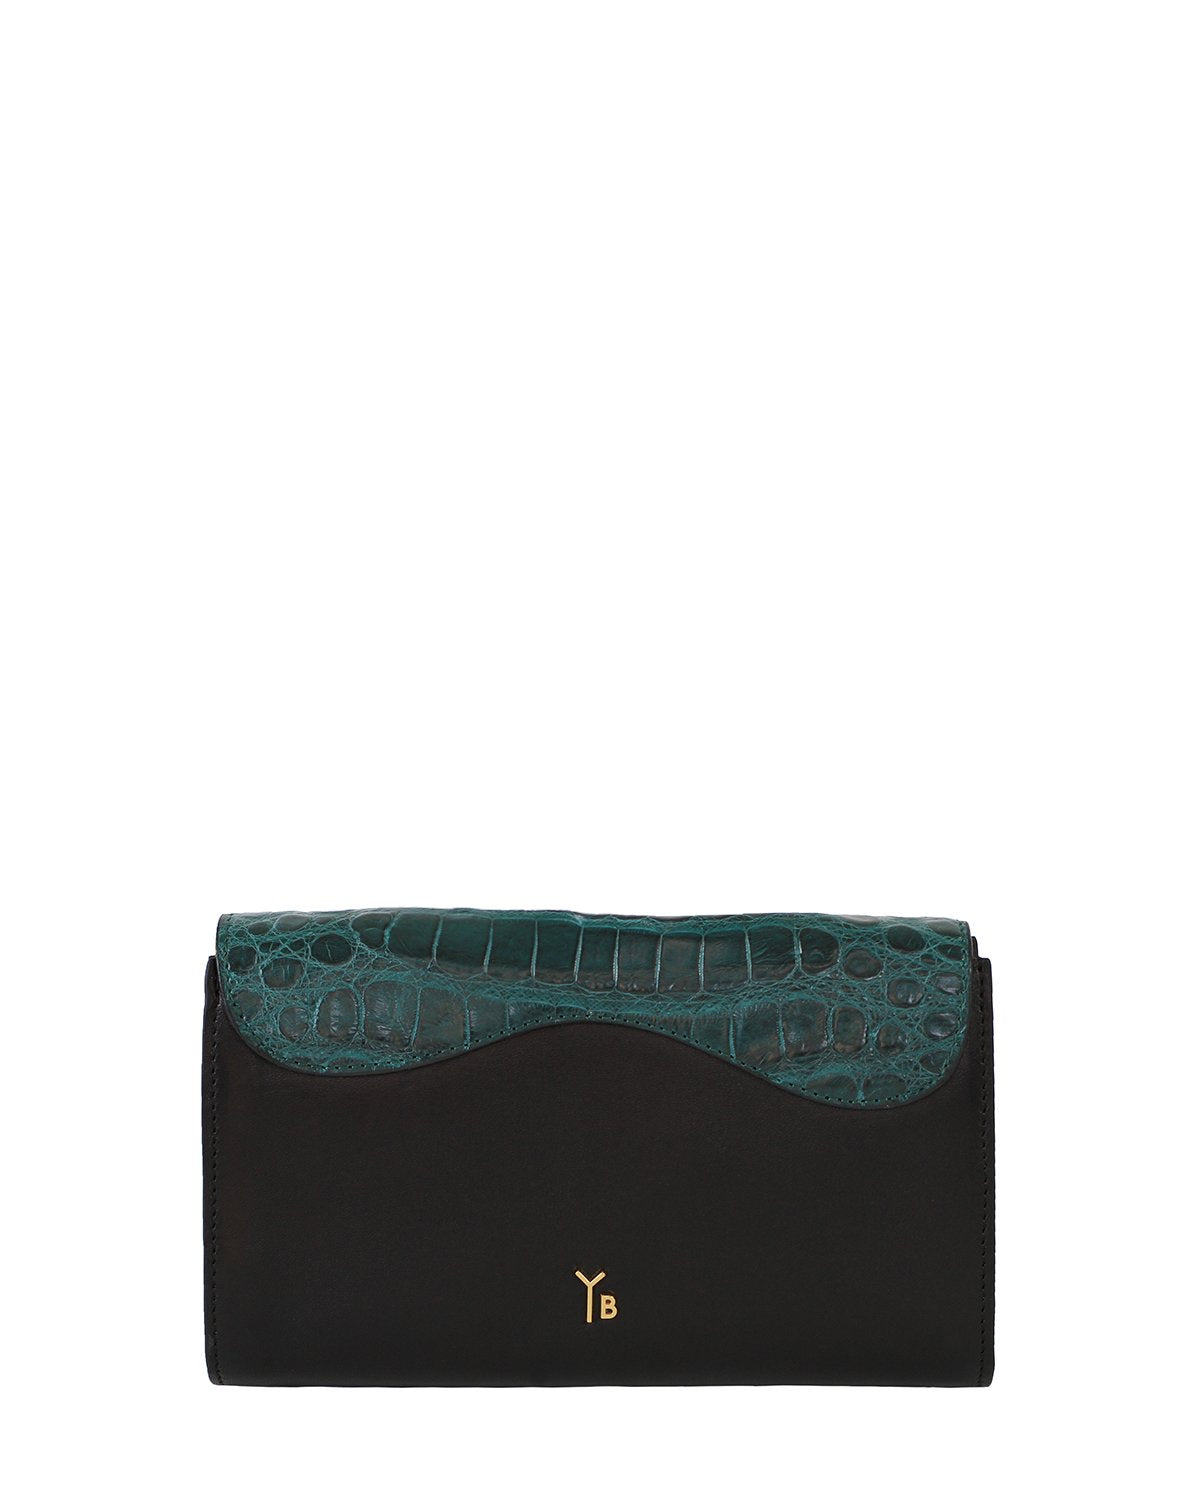 GREEN BLACK GRAY ALLIGATOR OSTRICH OSCAR CLUTCH YELLOW GOLD YARA BASHOOR BACK VIEW